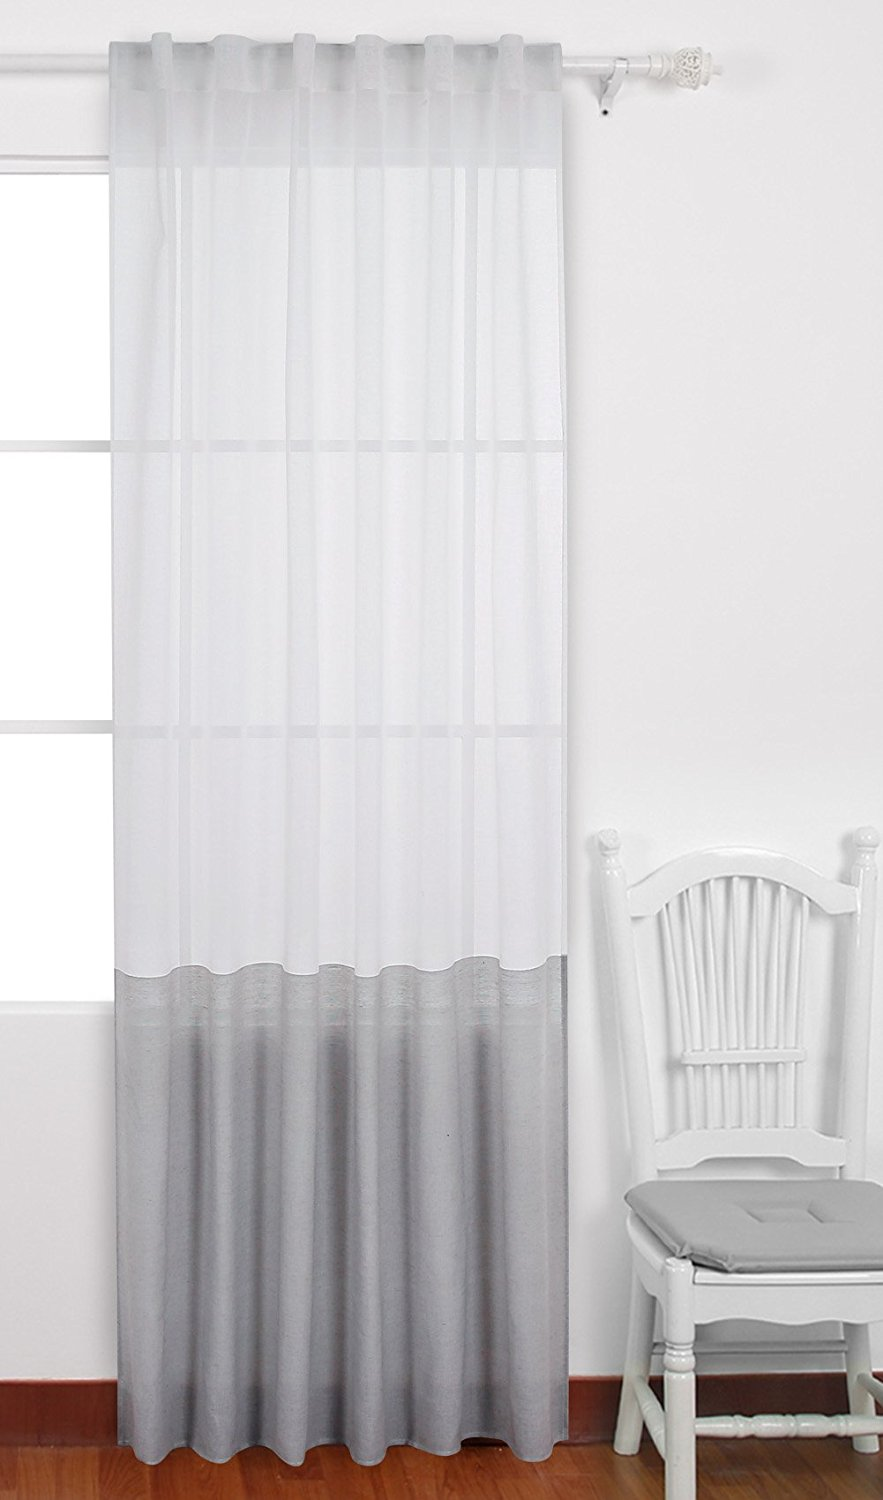 faux panel mineral curtains single linen curtain shop in roth pd whinfell light filtering allen grommet